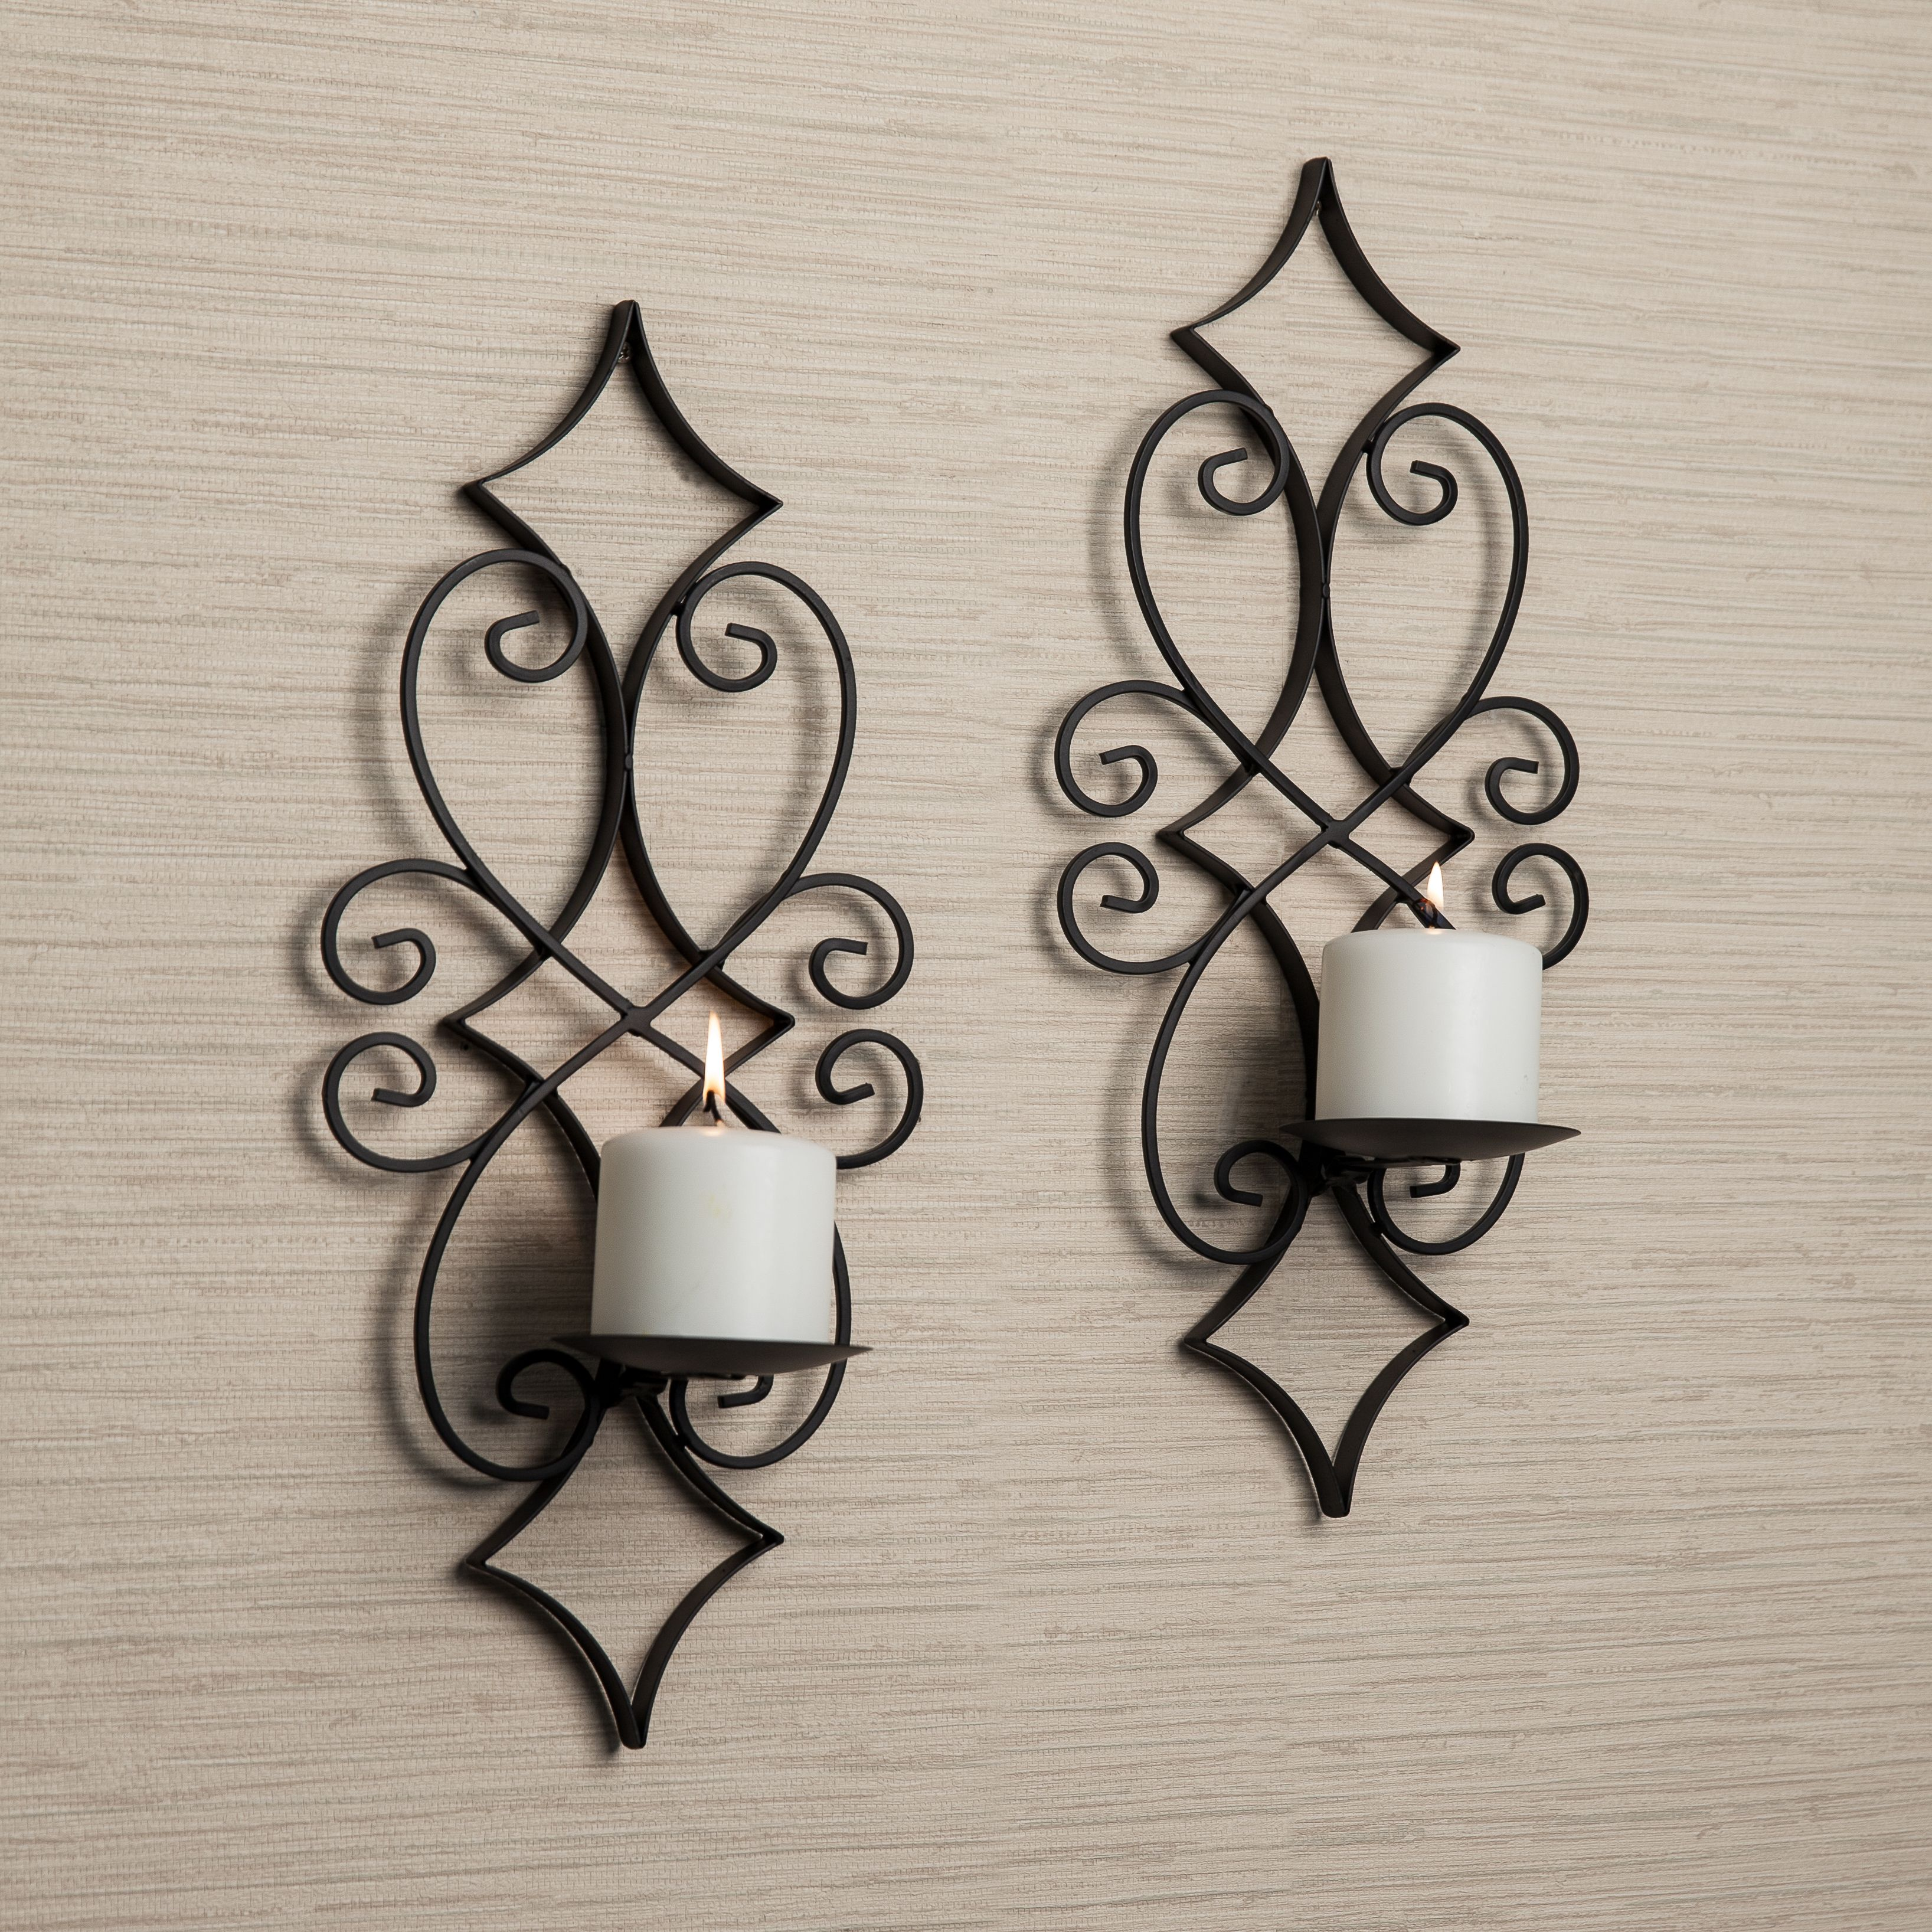 Casablanca Candle Sconce Set Danya B In 2021 Iron Wall Sconces Wall Candles Decorative Wall Sconces